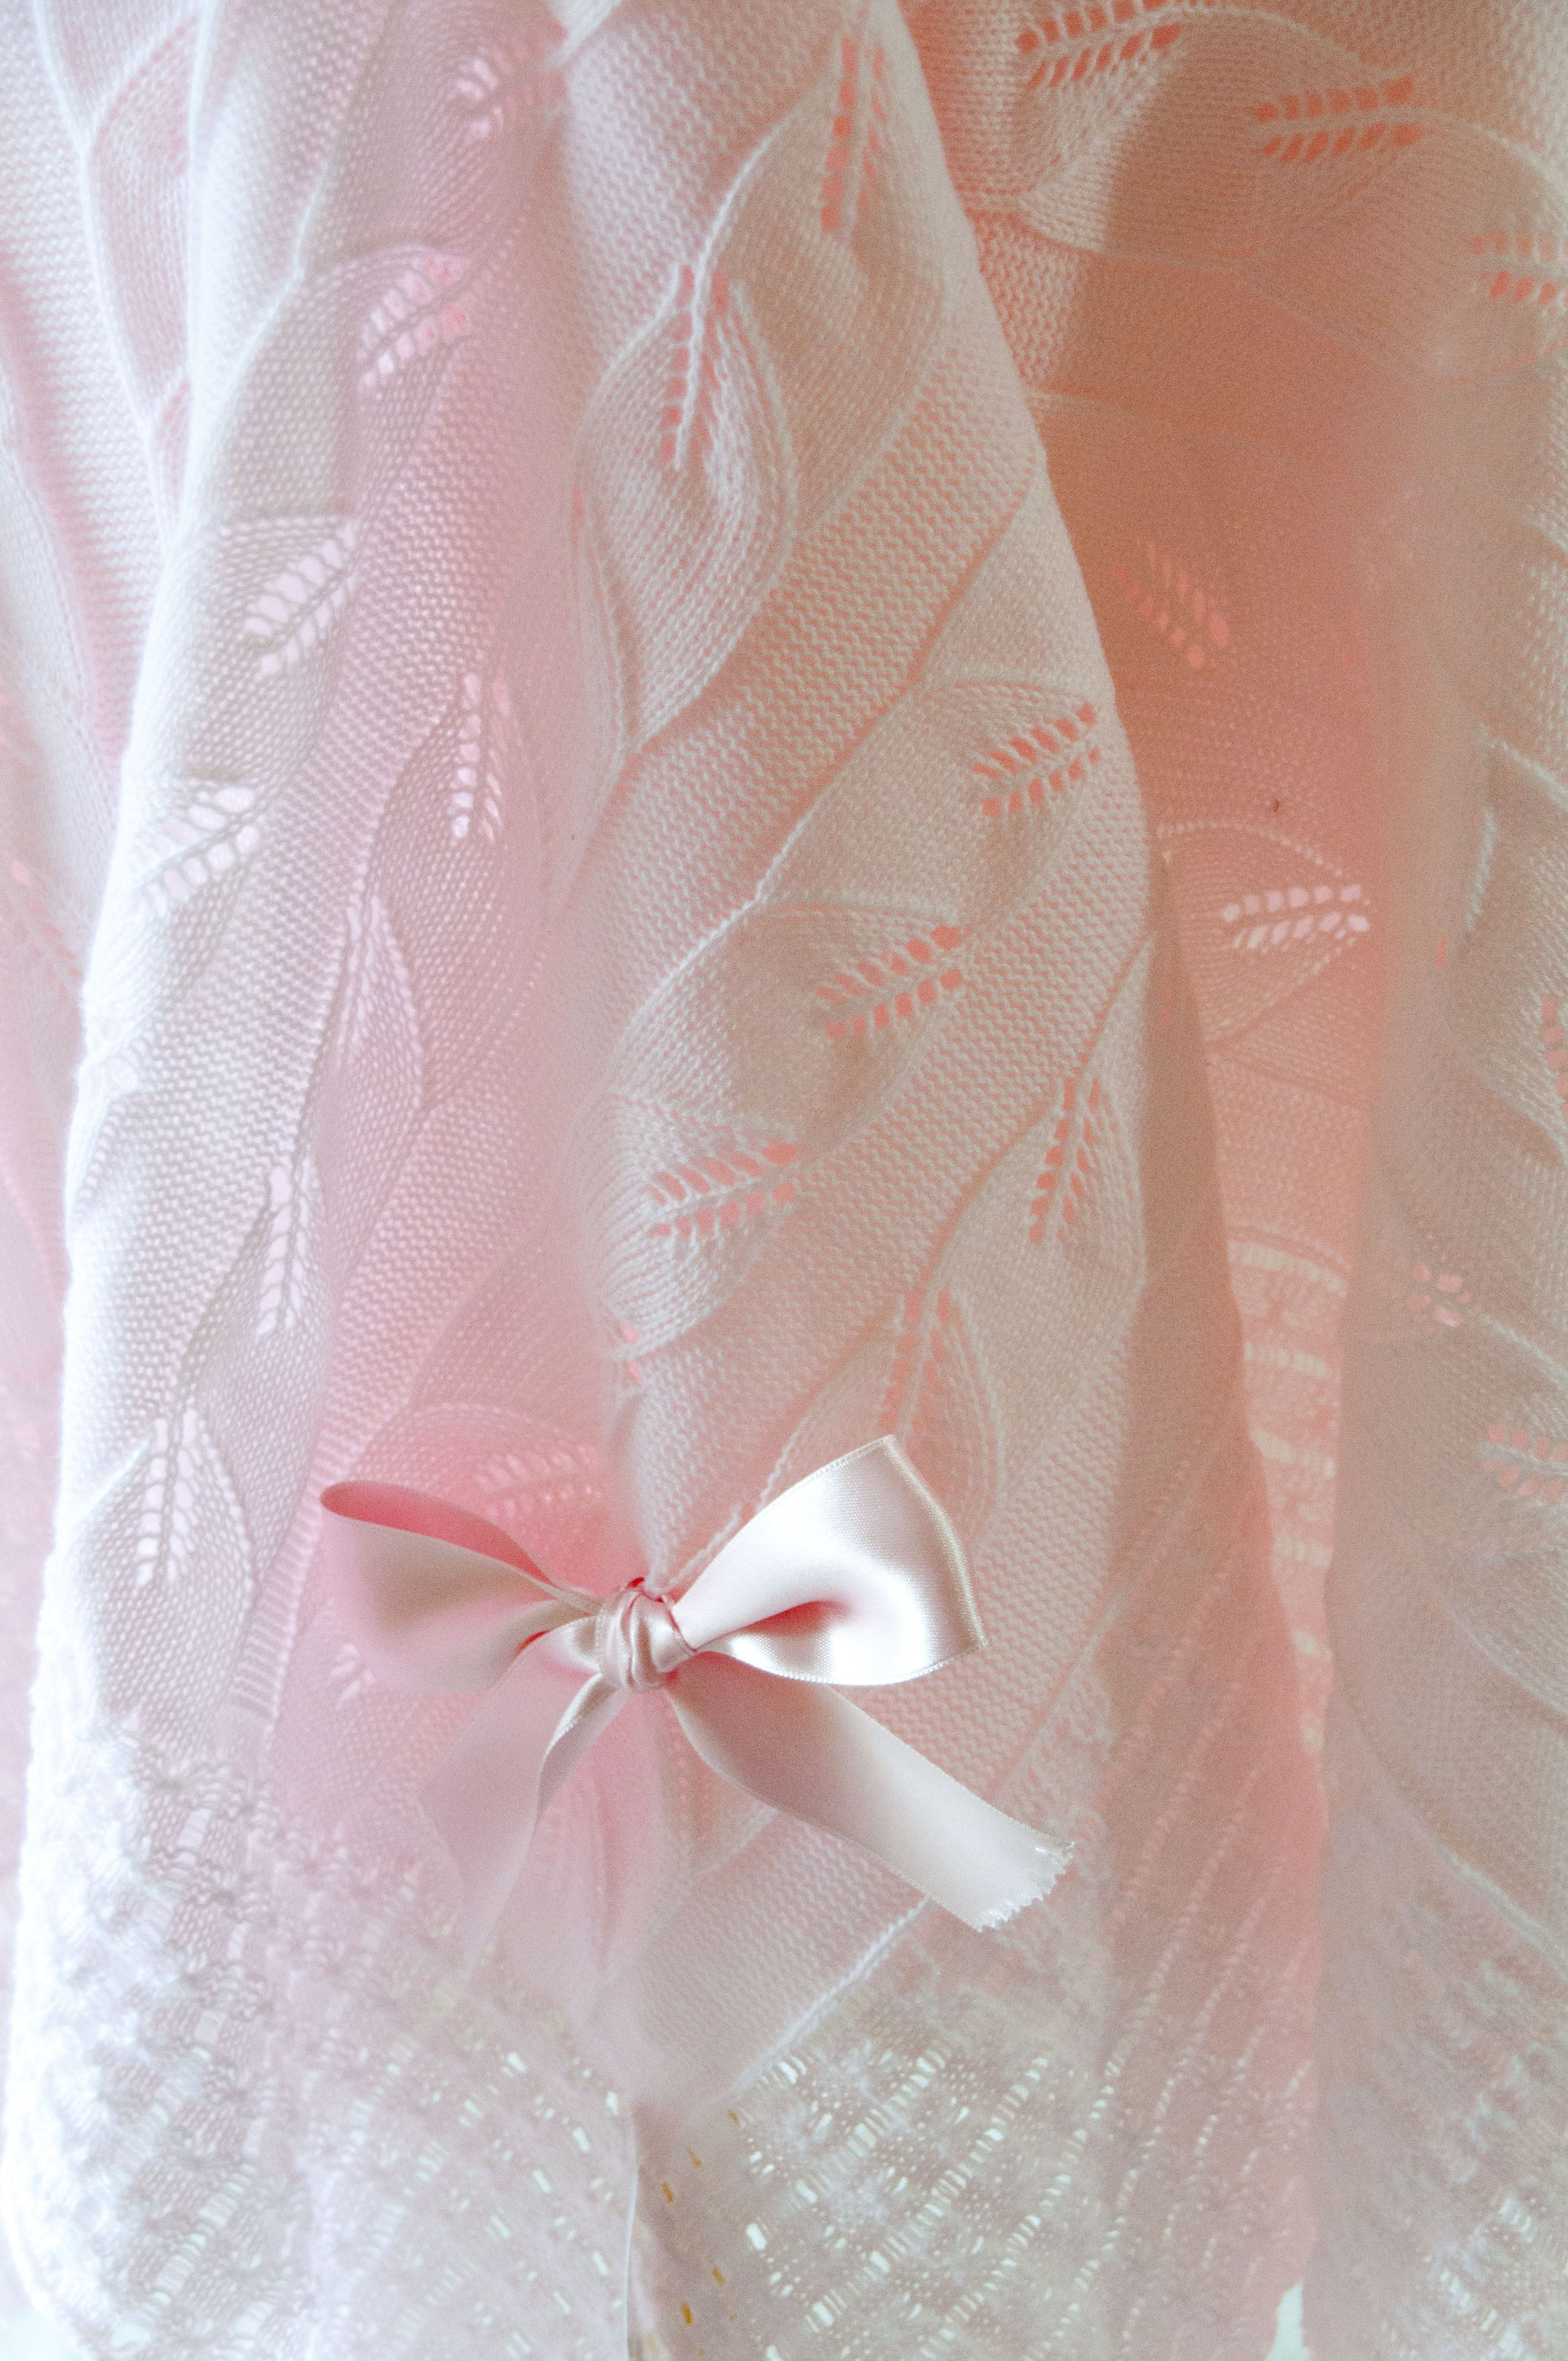 Pink Baby blanket - shawl. Wrap you baby with high quality and style!